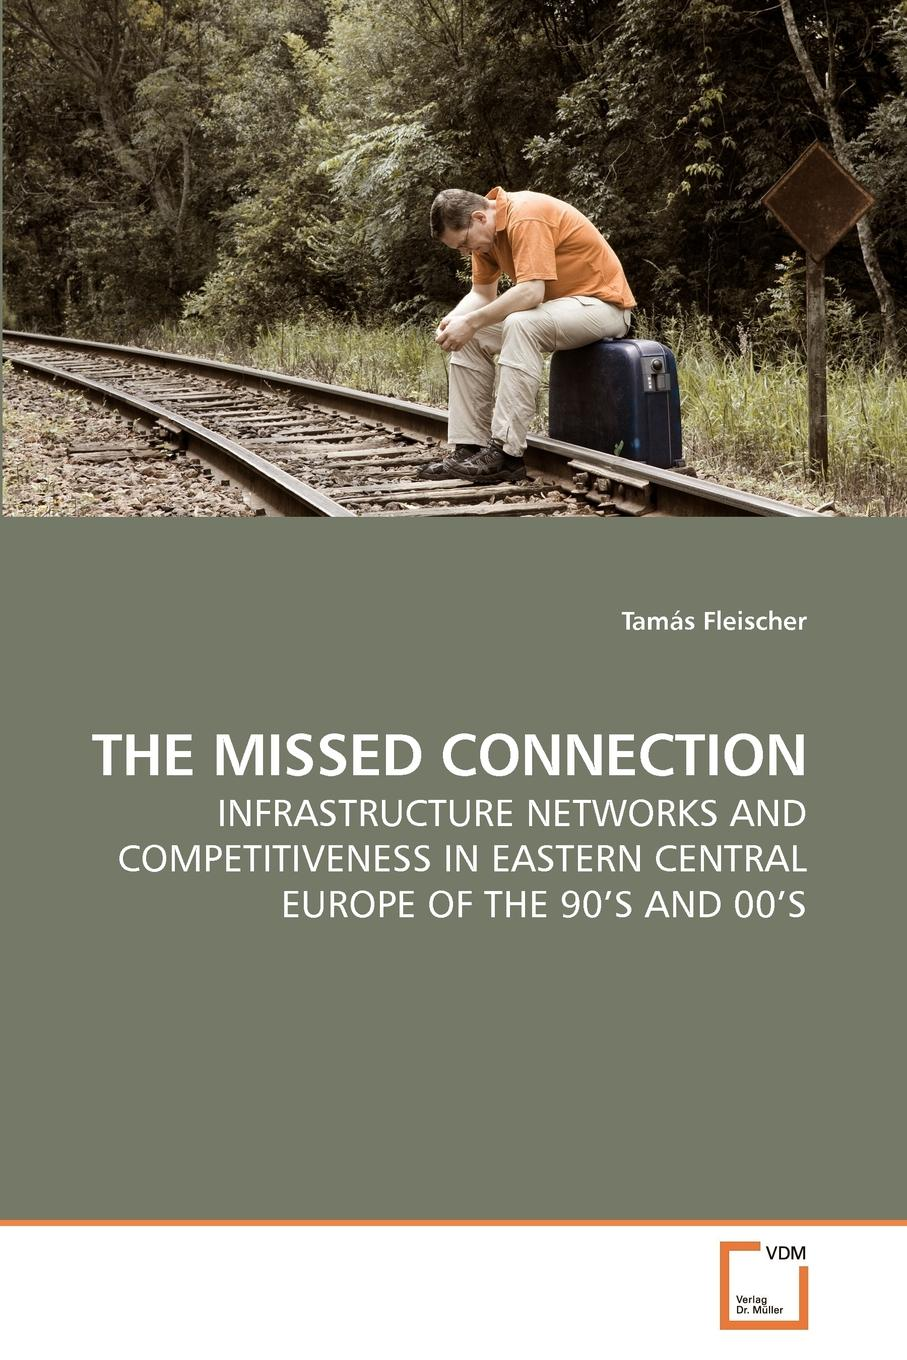 Tamás Fleischer THE MISSED CONNECTION malcolm kemp extreme events robust portfolio construction in the presence of fat tails isbn 9780470976791